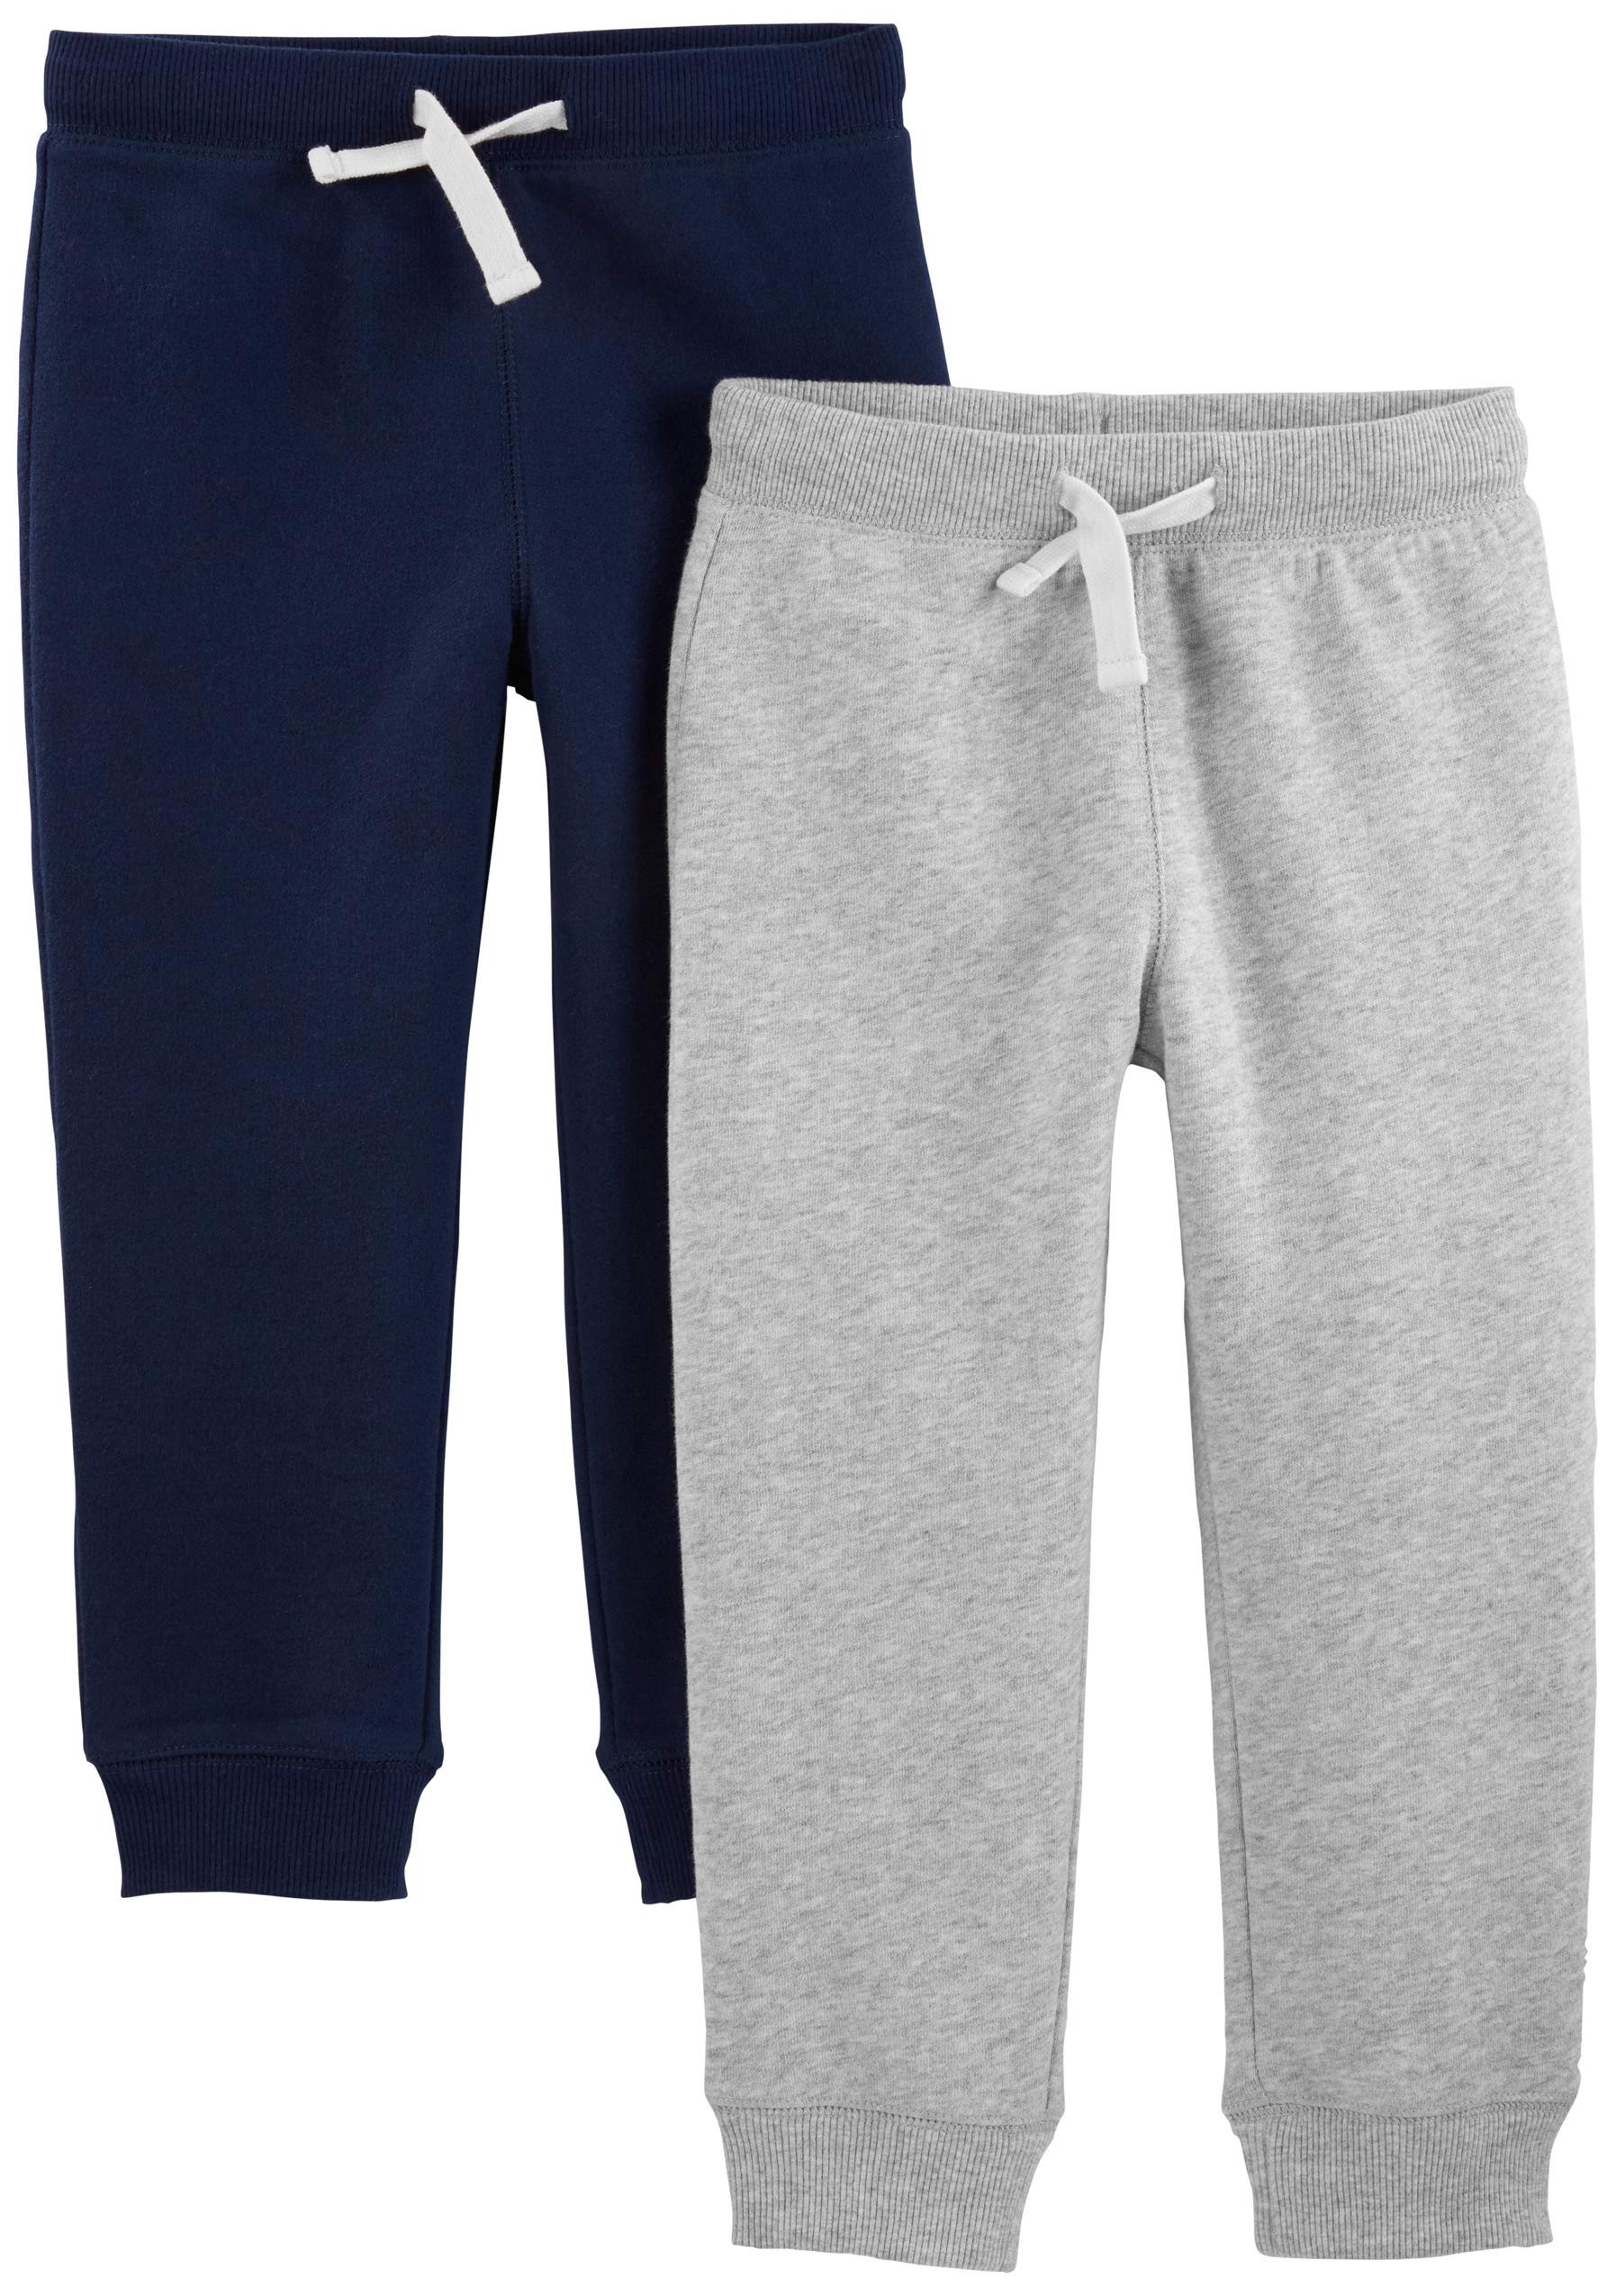 Simple Joys by Carter's Boys' Toddler 2-Pack Pull on Fleece Pants, Gray/Navy, 5T by Simple Joys by Carter's